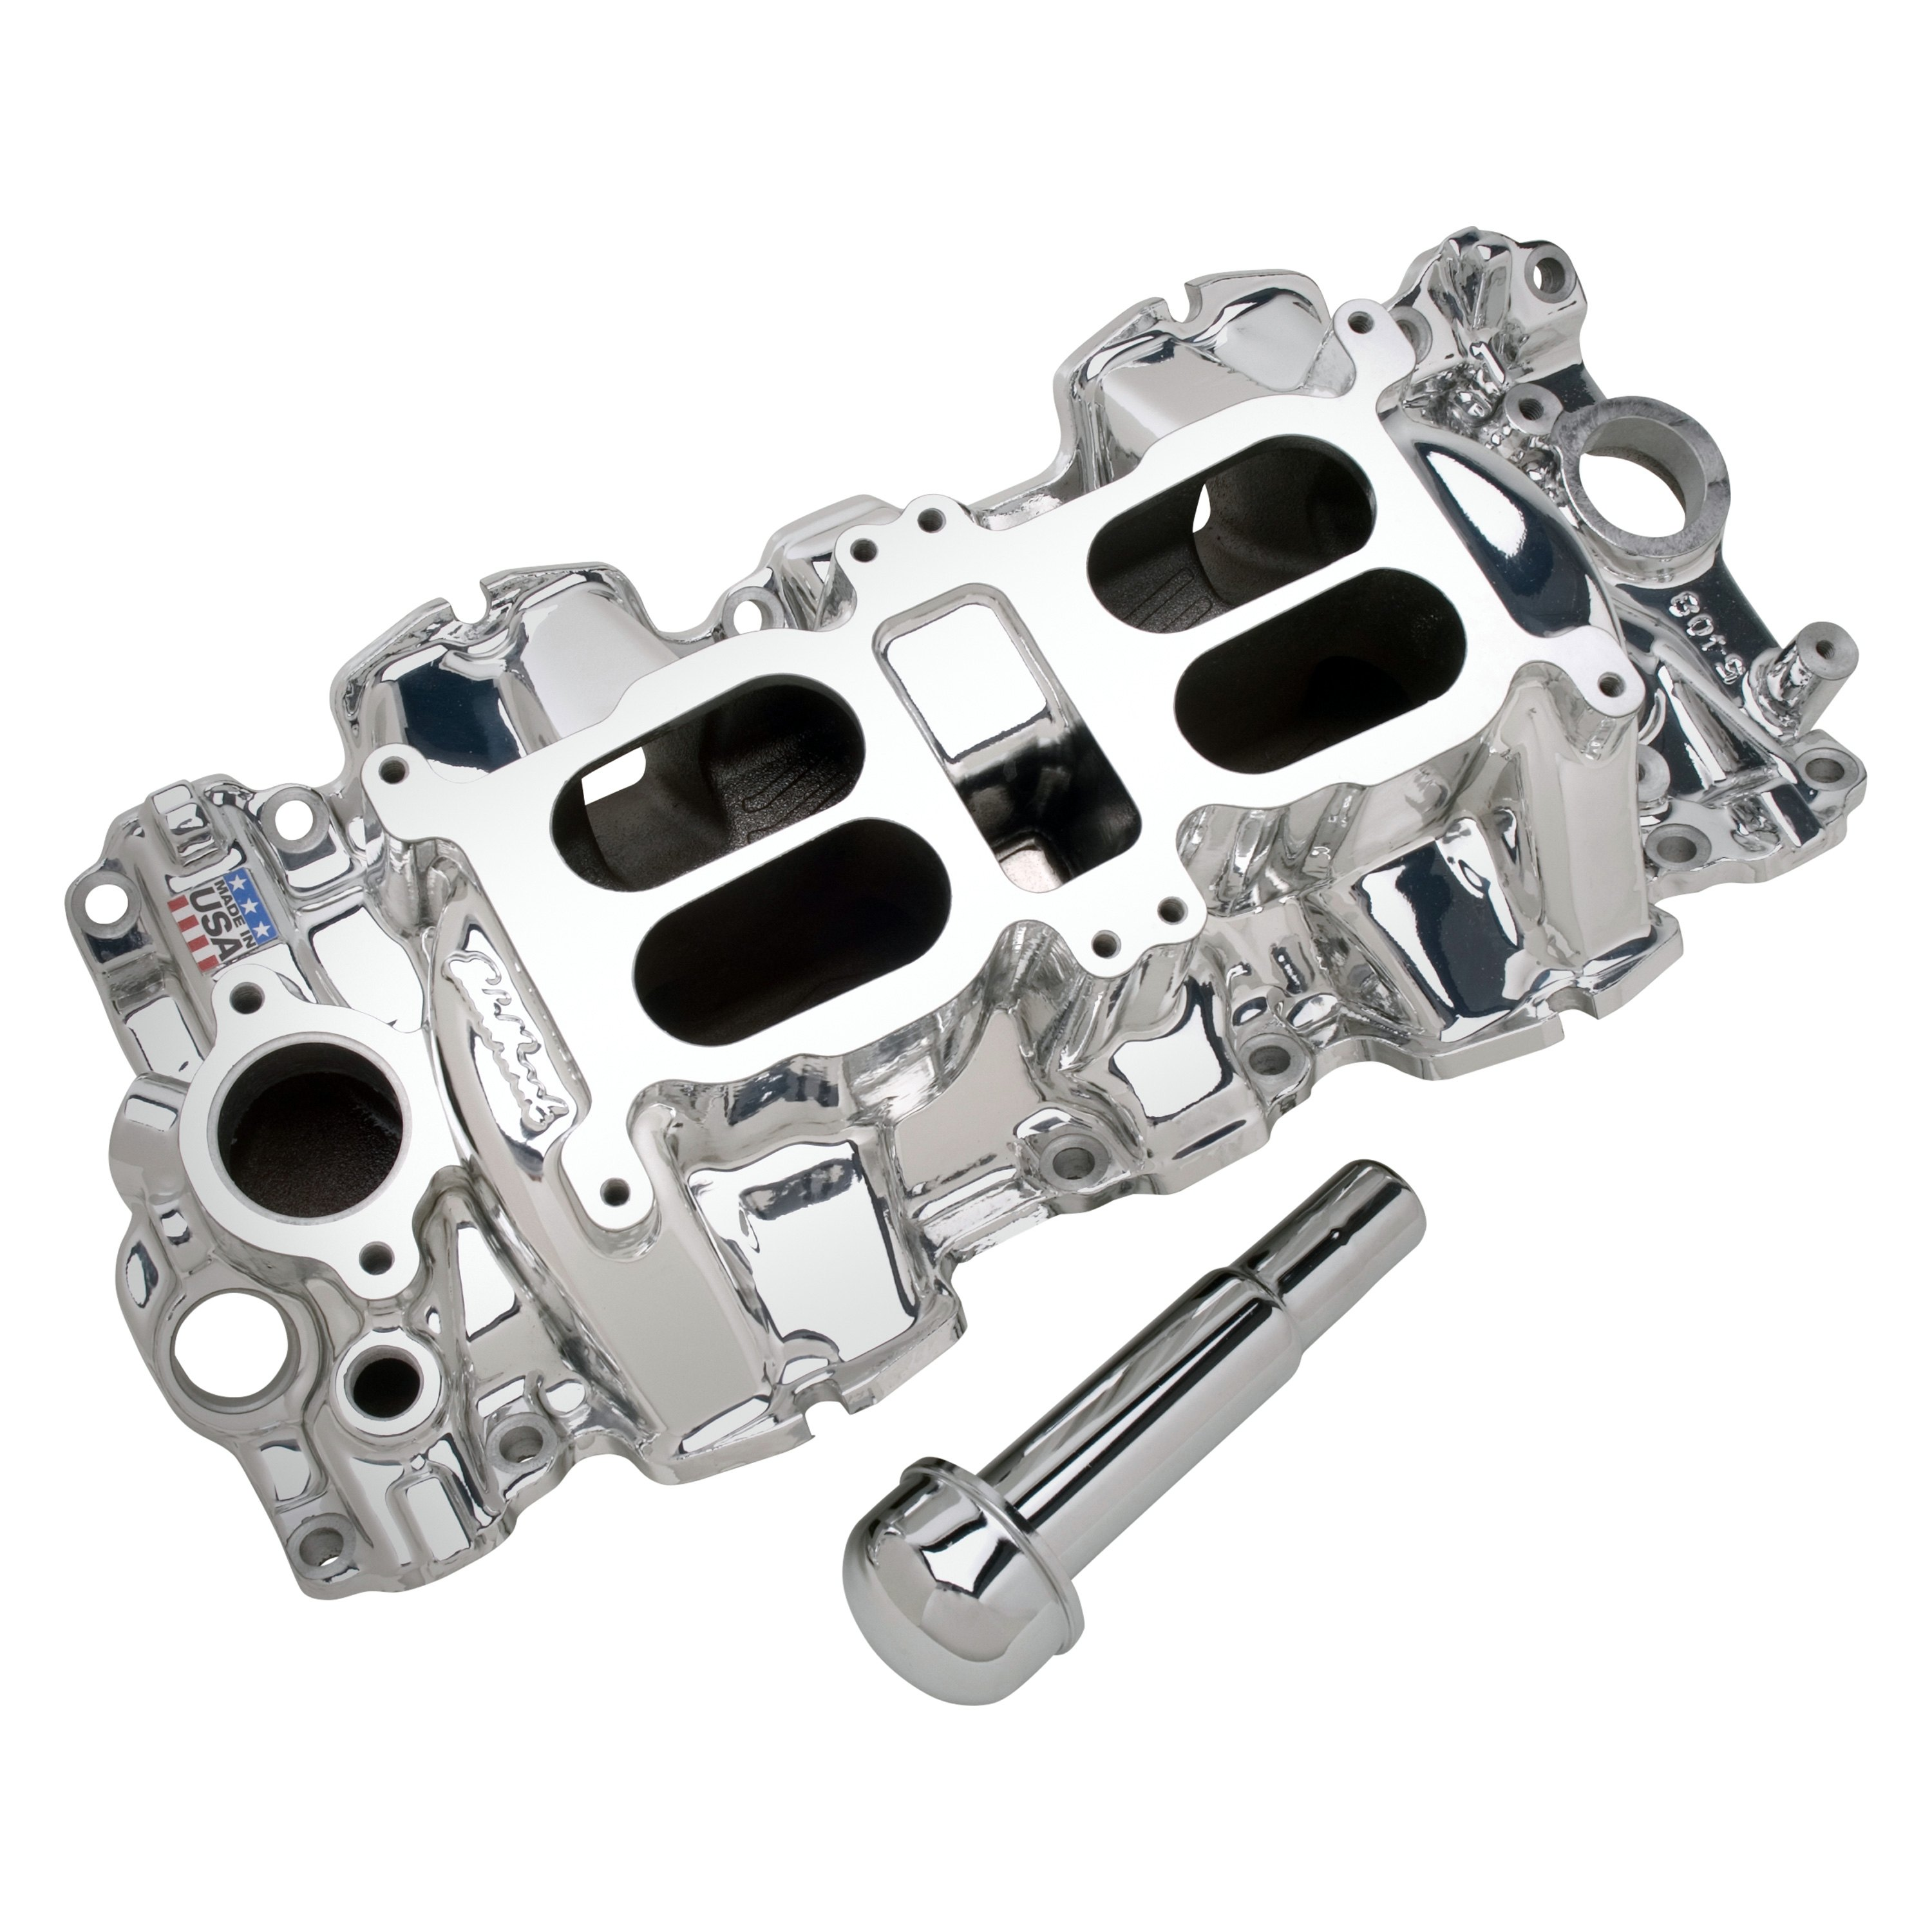 Chevy Impala With Edelbrock Performer RPM